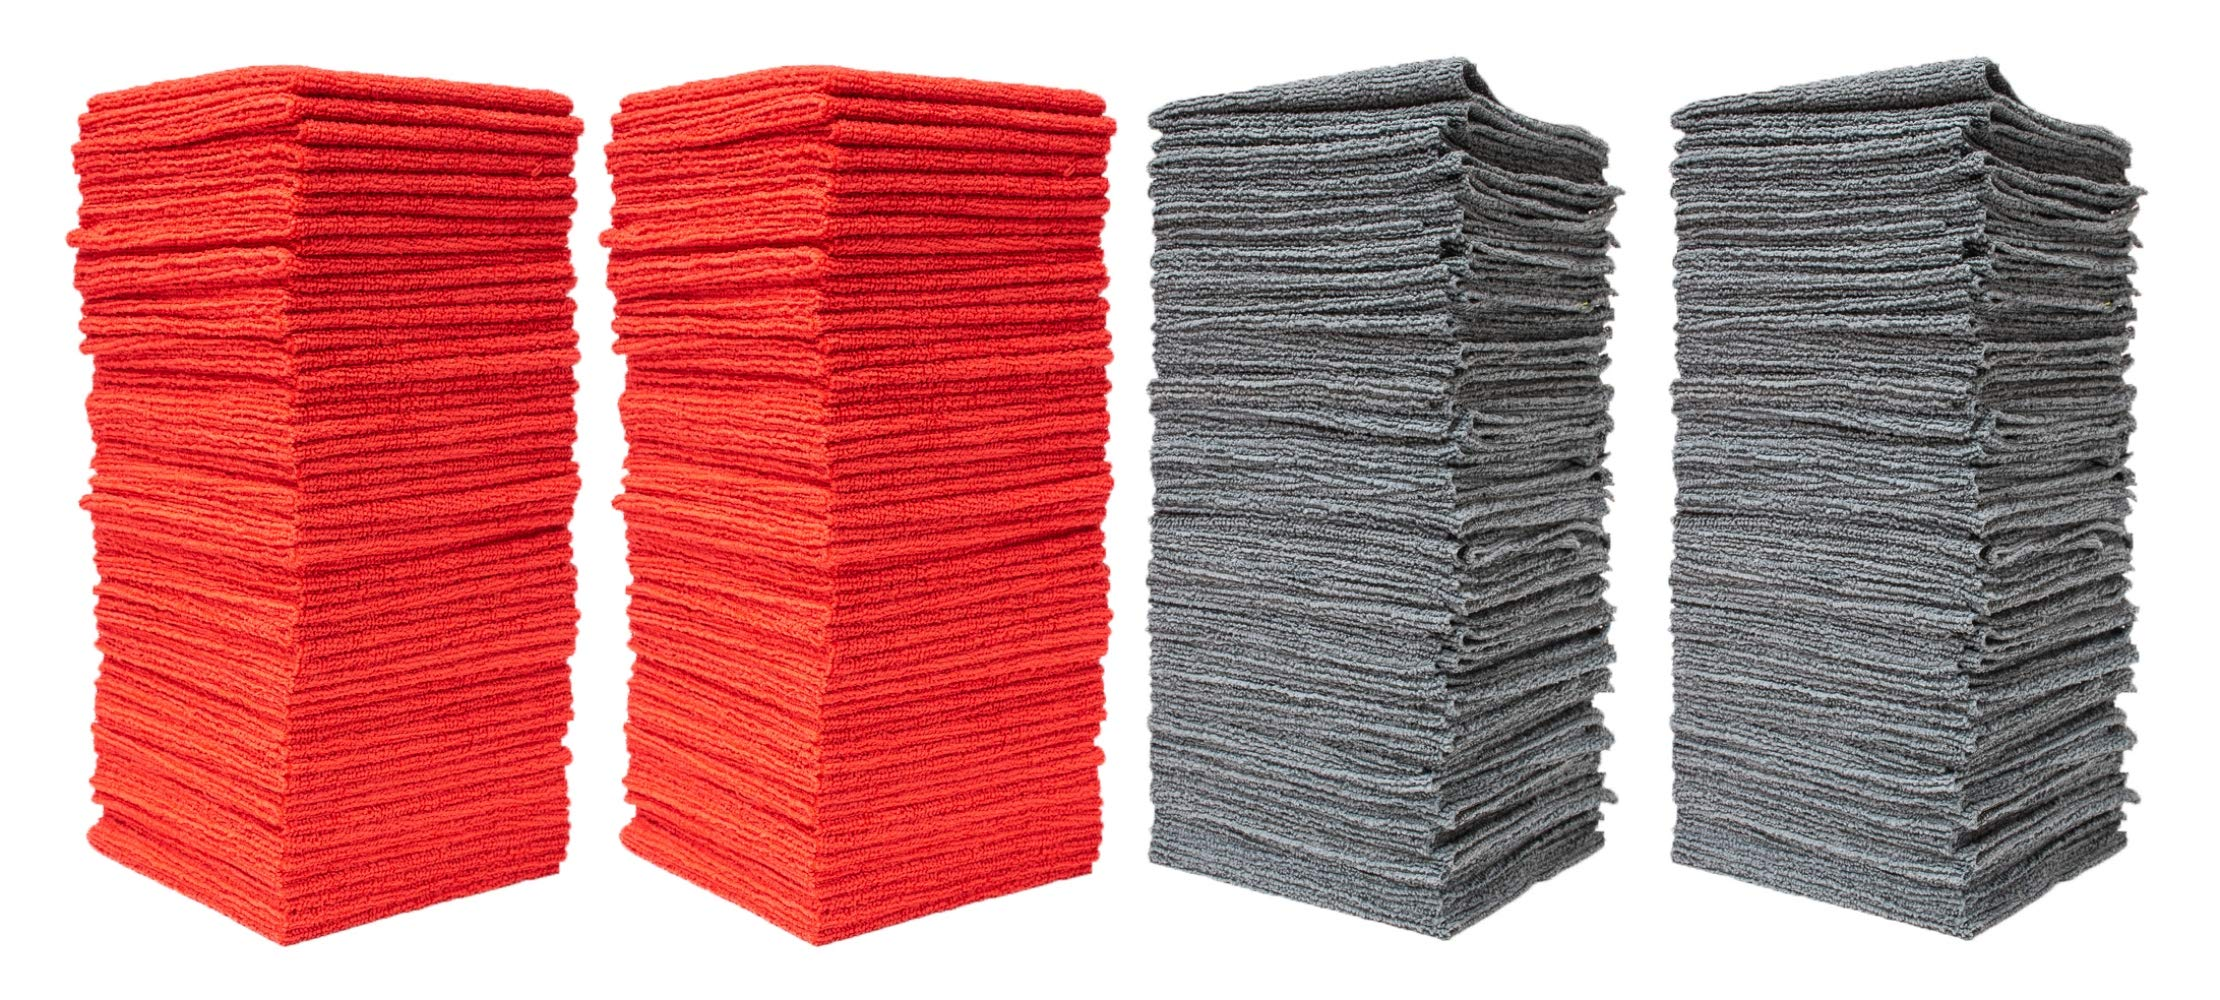 Pull N Wipe 79135 Red/Gray 12'' x 12'' Microfiber Cleaning Cloths and 2 Dispenser Boxes, 100 Pack by Pull N Wipe